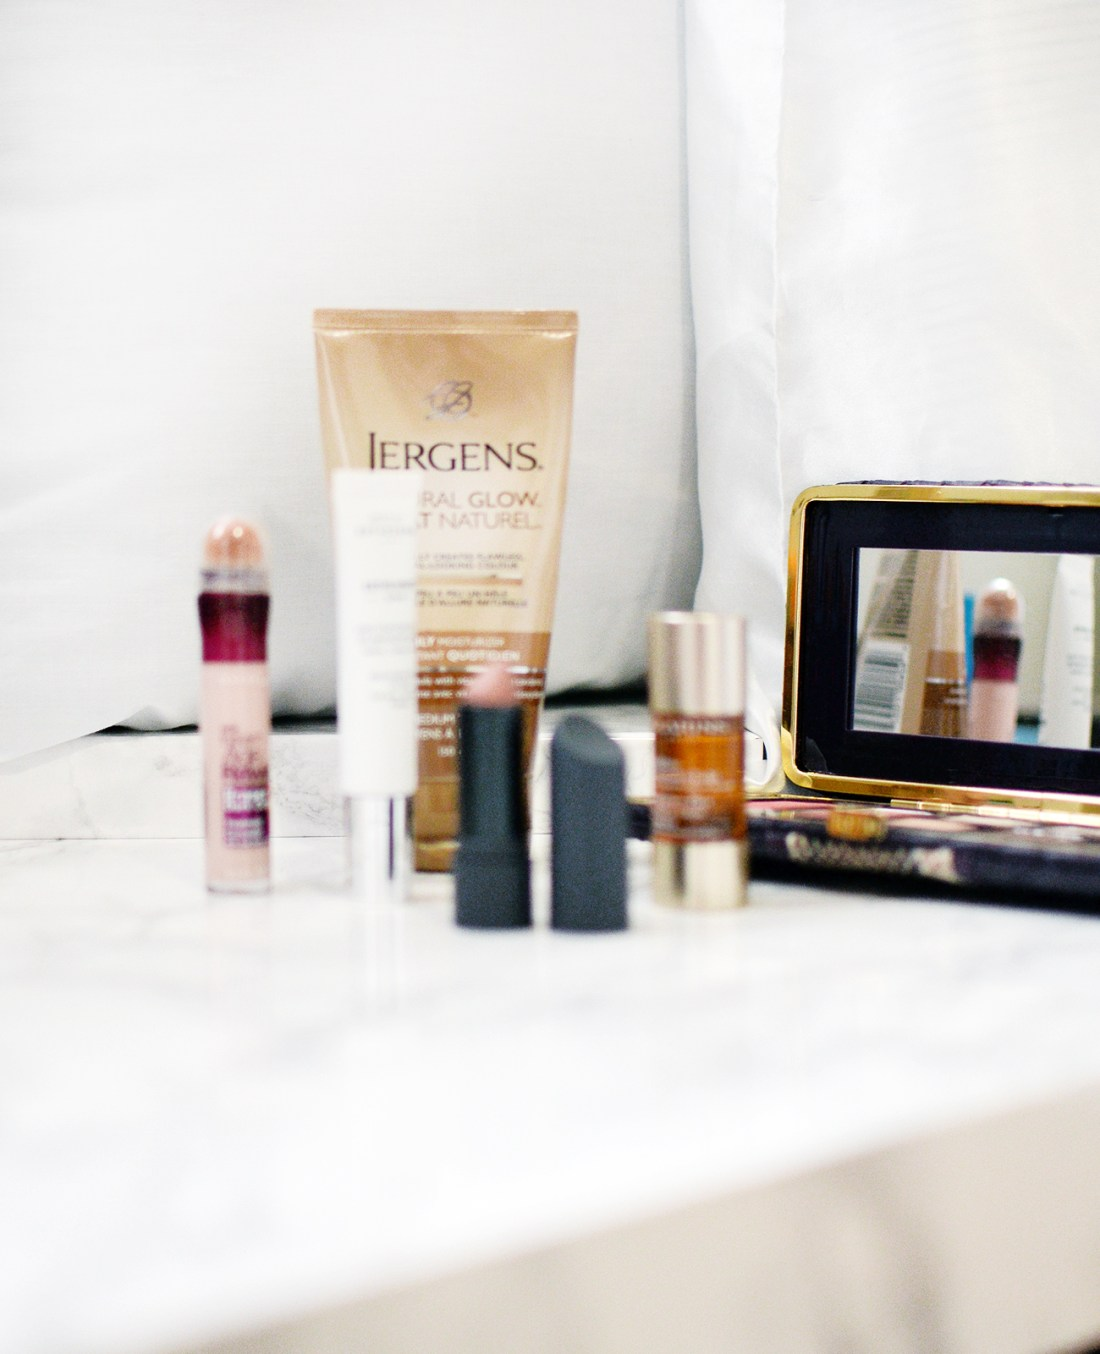 At the barest hint of spring (or any seasonal change for that matter), it signals a time for a makeup change-up. If you've followed or read my blog for some time, you'll know that it takes a lot for me to change up my routine. I'm all about finishing what I already have open before opening a new product because I like to keep my makeup stash as sanitary as possible! But the warmer weather that we had throughout February simply meant a need to bring out some new products and colours!